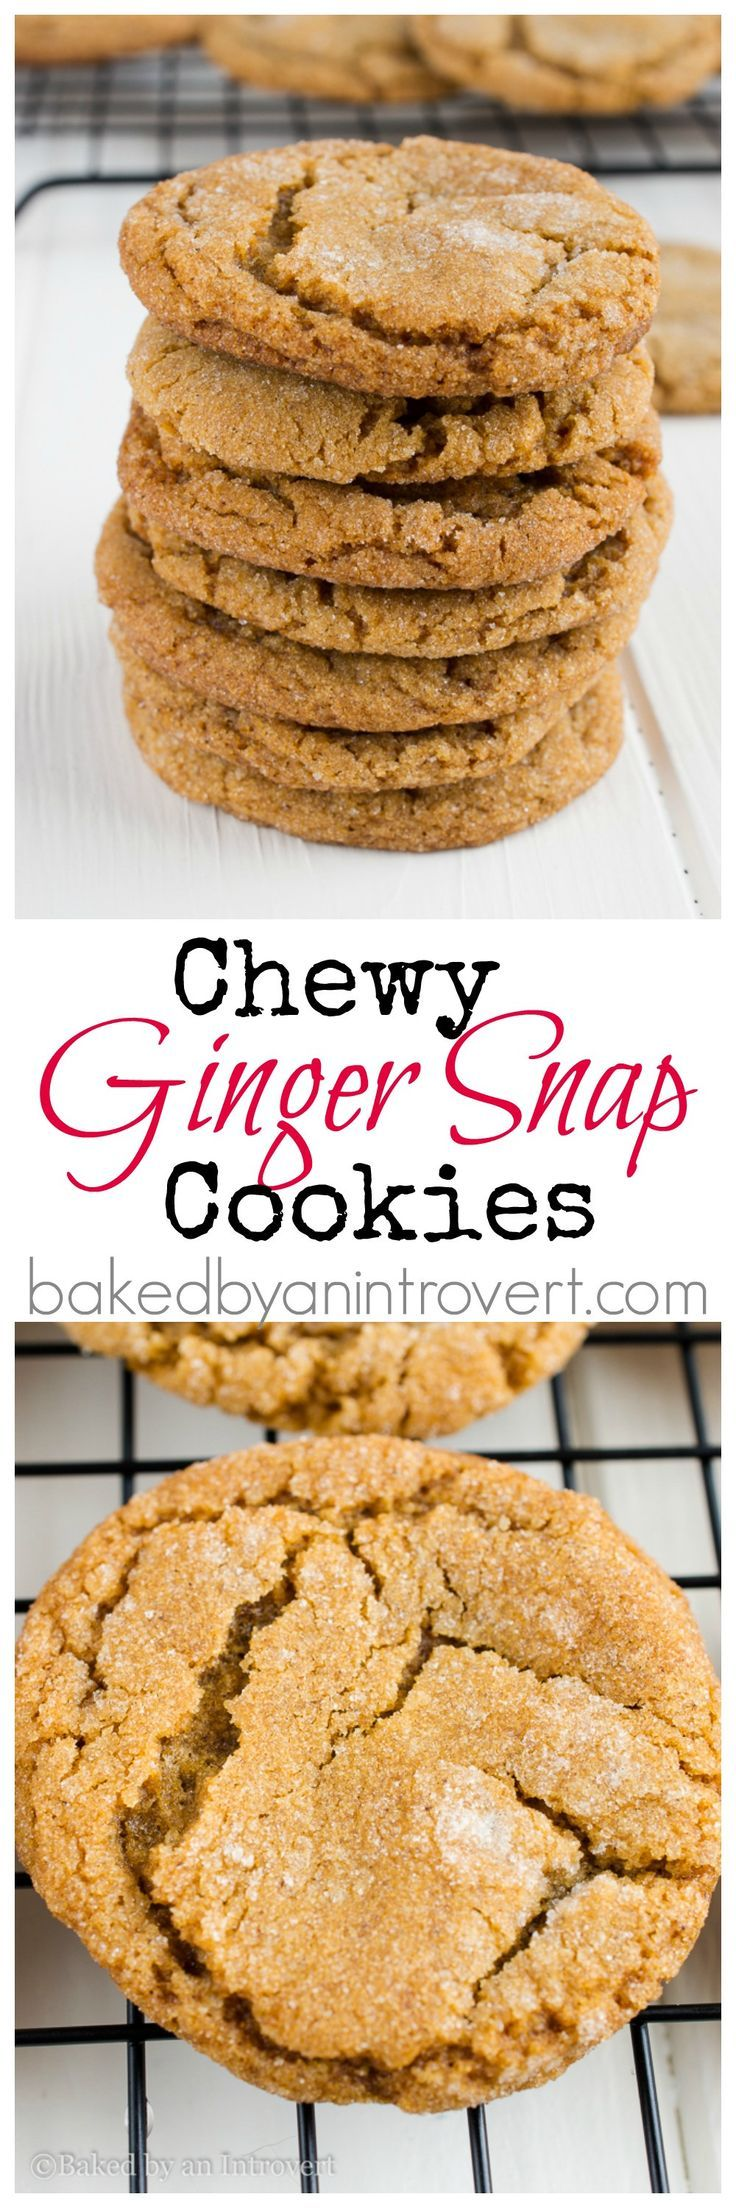 Chew Ginger Snap Cookies - Soft and chewy gingersnap cookies infused with molasses, cinnamon, and cloves.